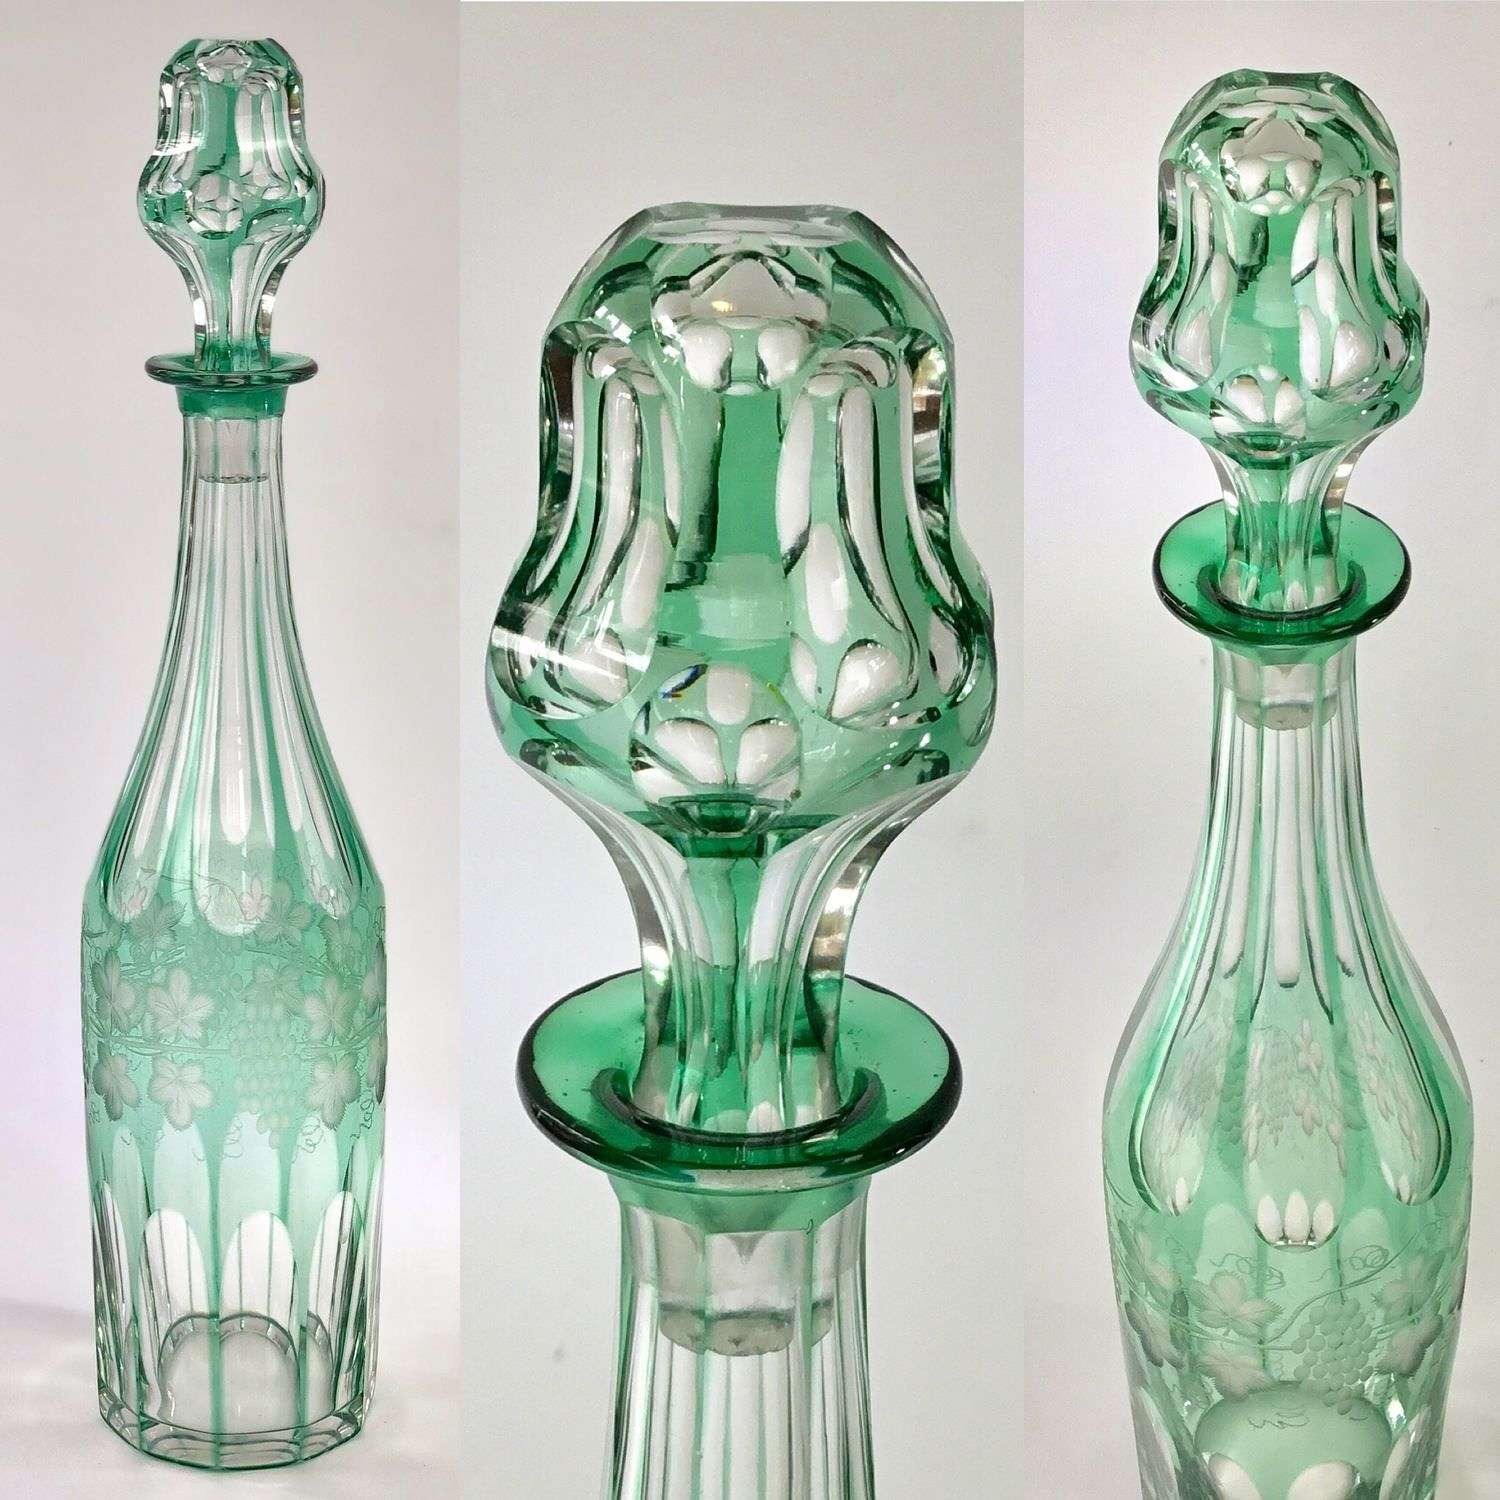 19th Century cut to clear glass decanter